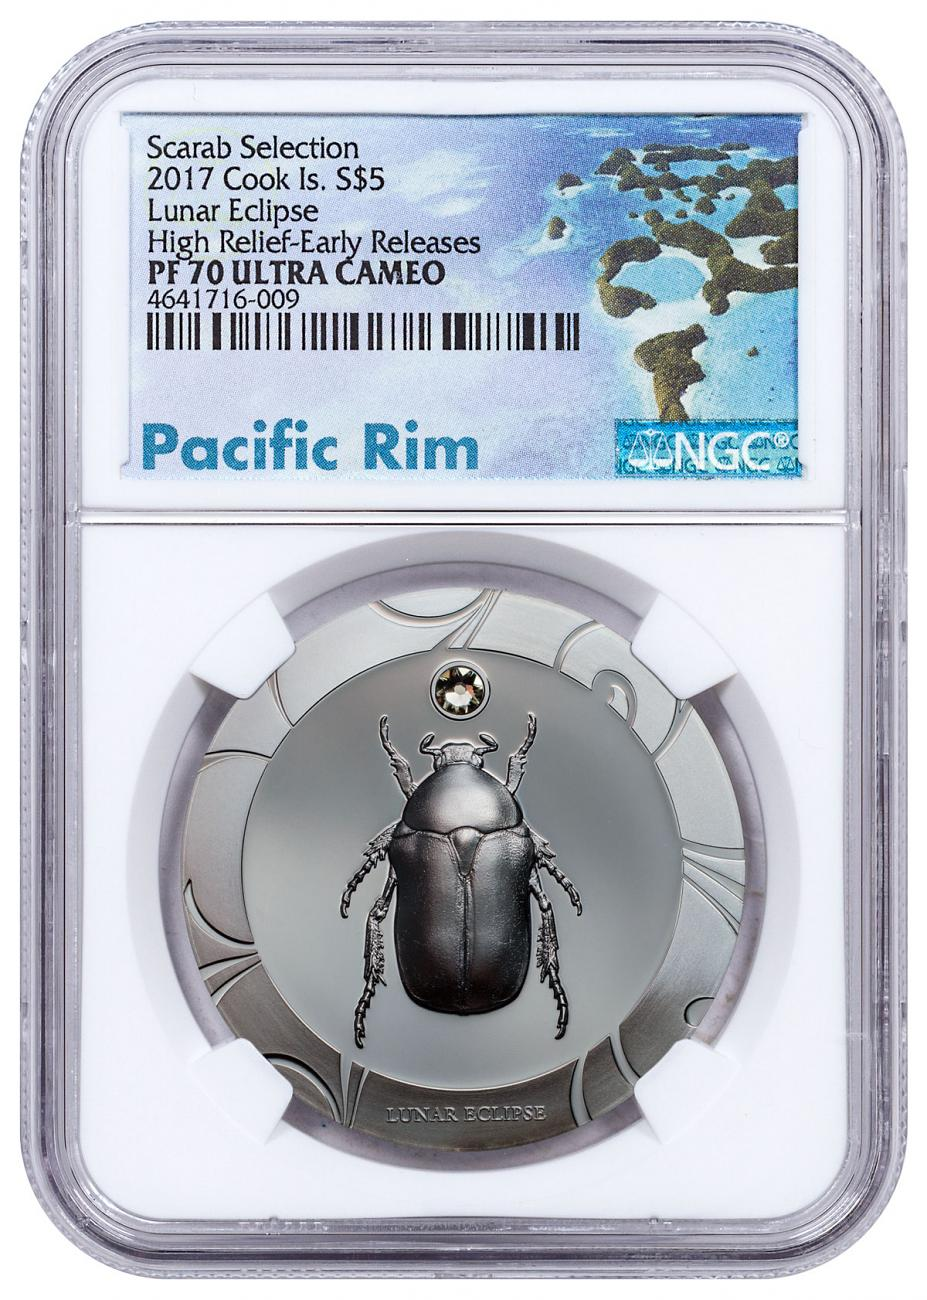 2017 Cook Islands Scarab Beetle Selection II - Lunar Eclipse High Relief 1 oz Silver Proof $5 Coin NGC PF70 UC Exclusive Pacific Rim Label